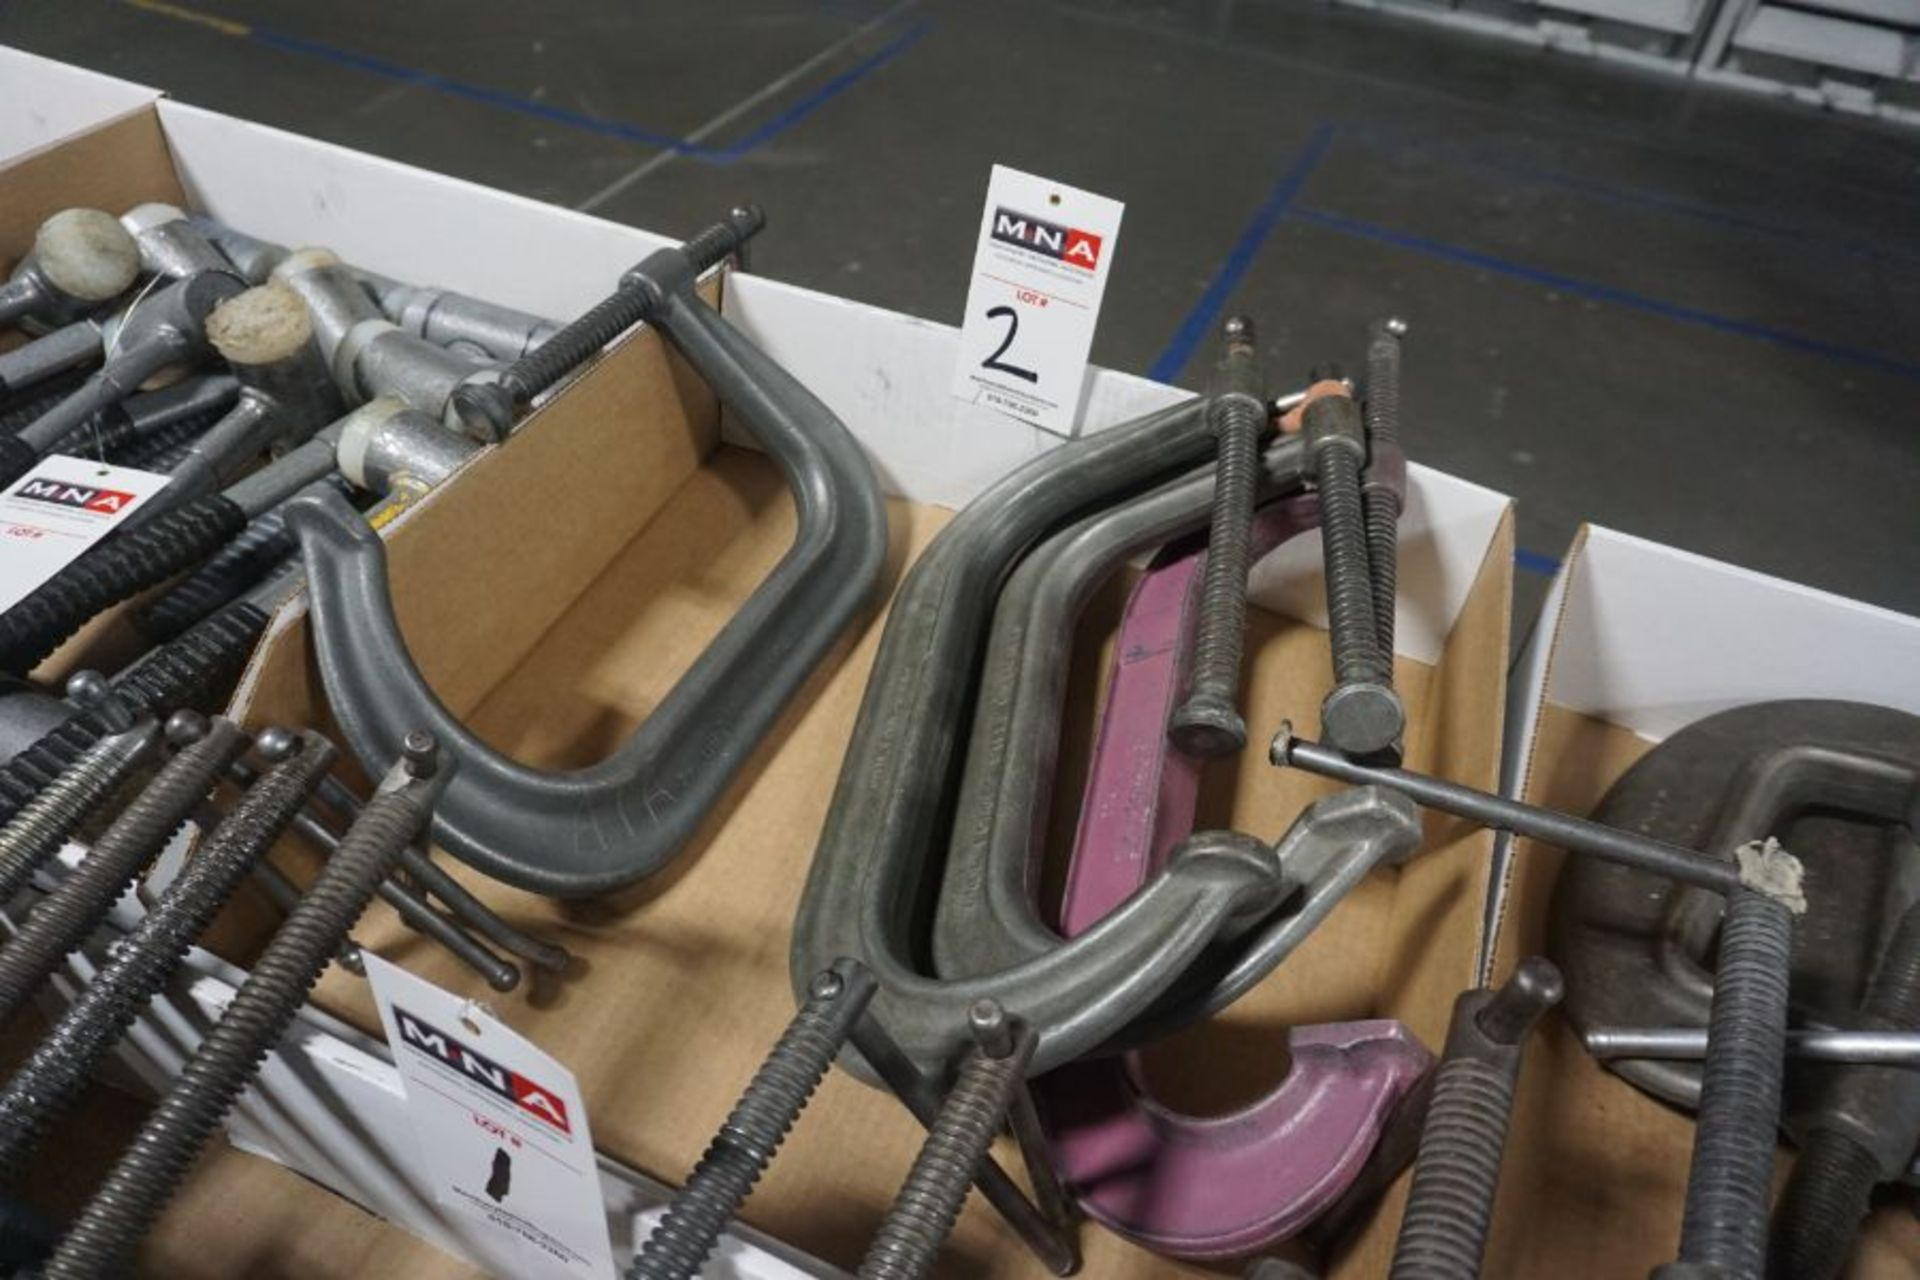 C - Clamps - Image 3 of 4